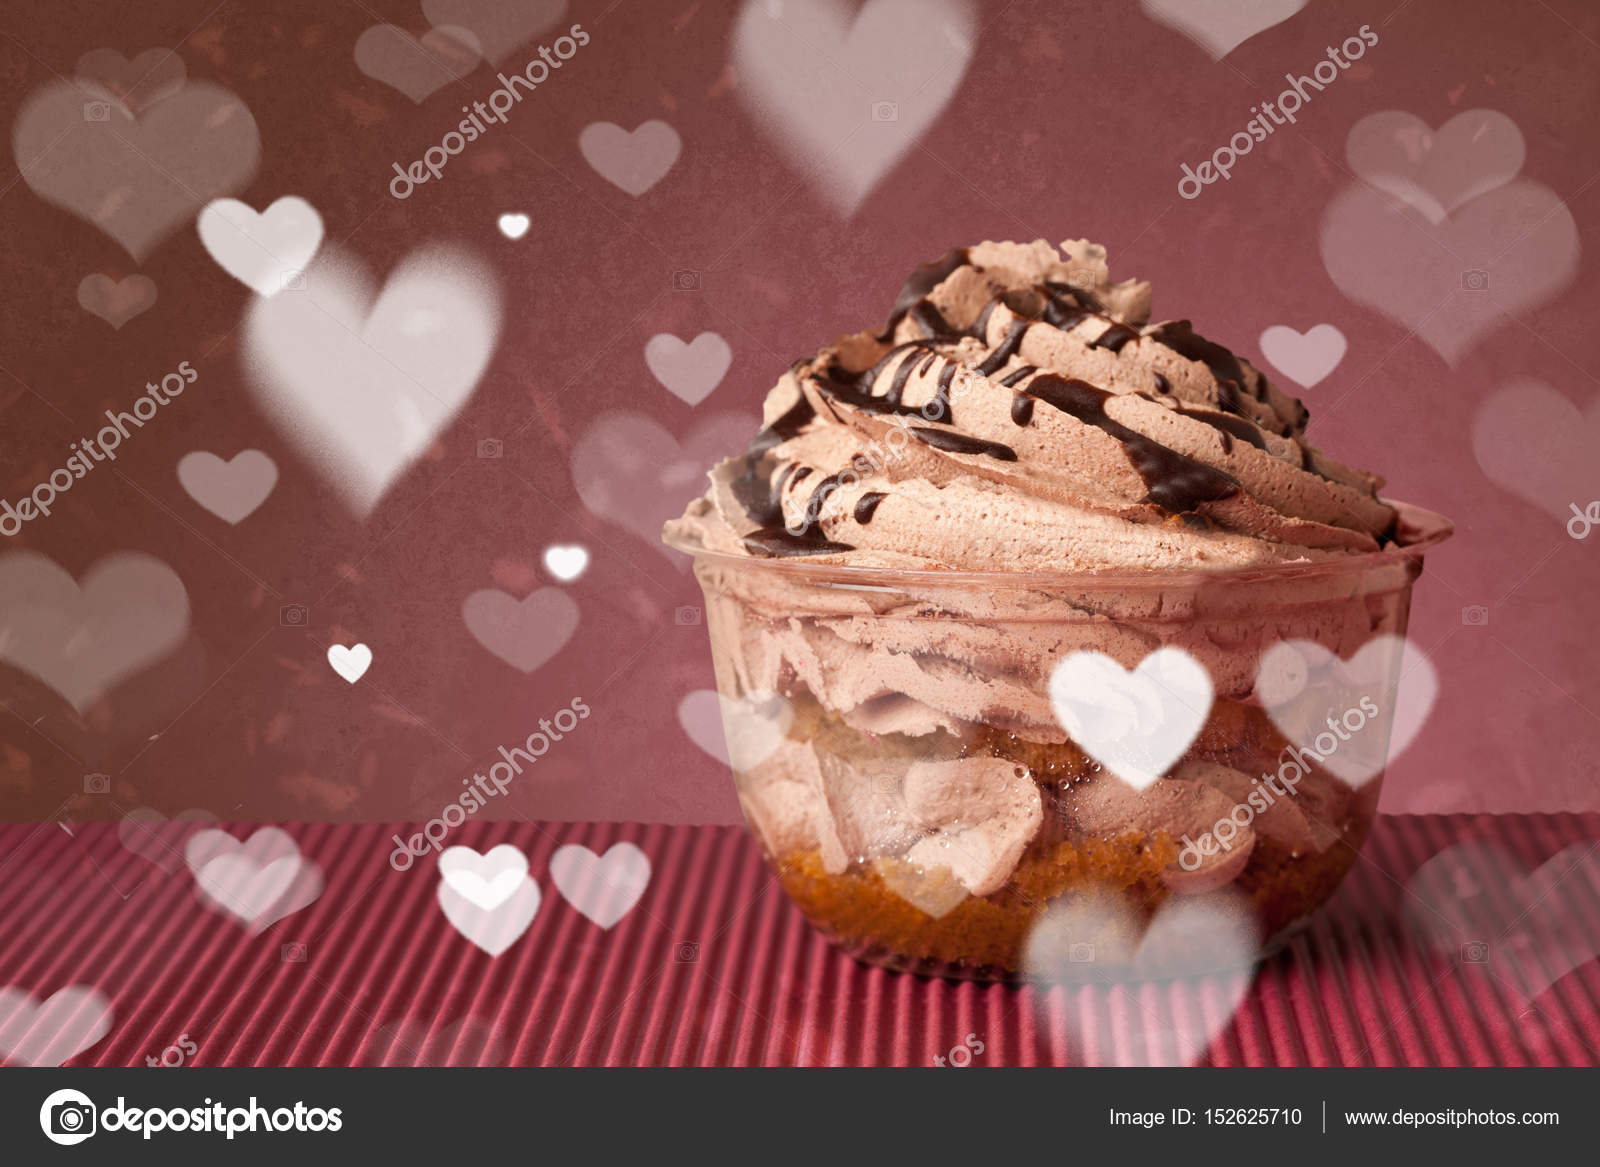 Delicious Party Cakes With Heart Shape Symbols On Colorful Backg